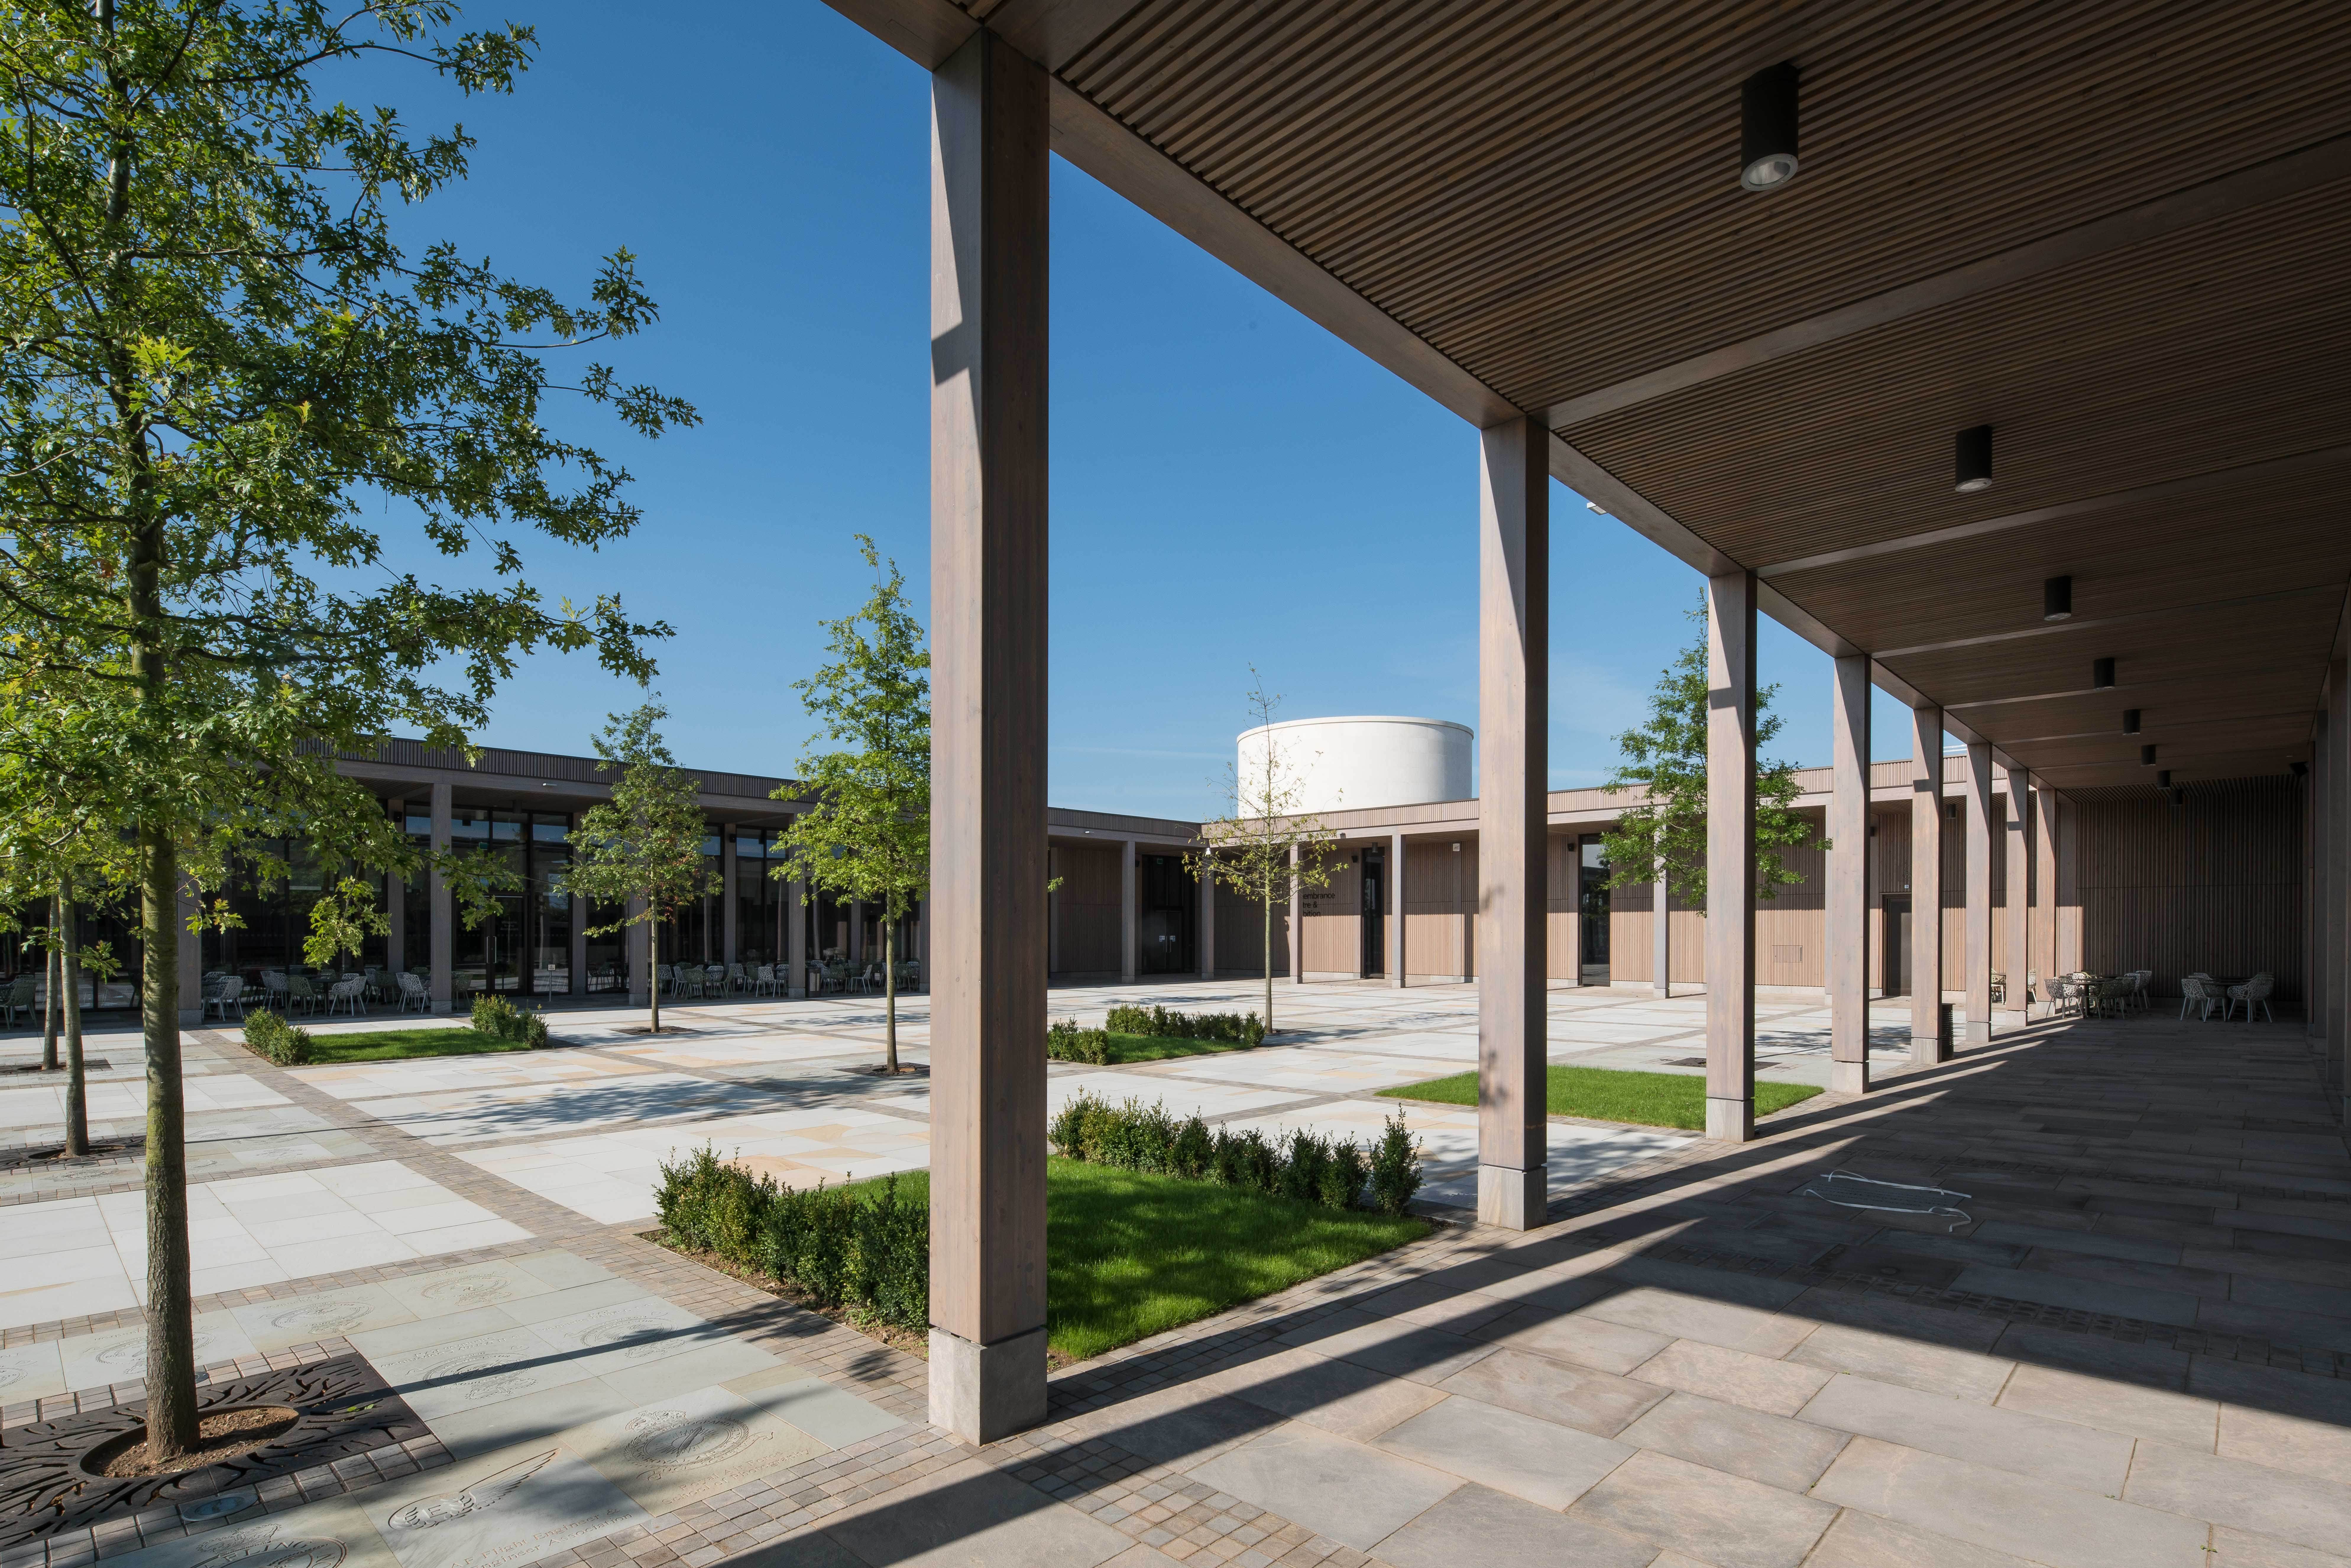 National Memorial Arboretum Remembrance Centre